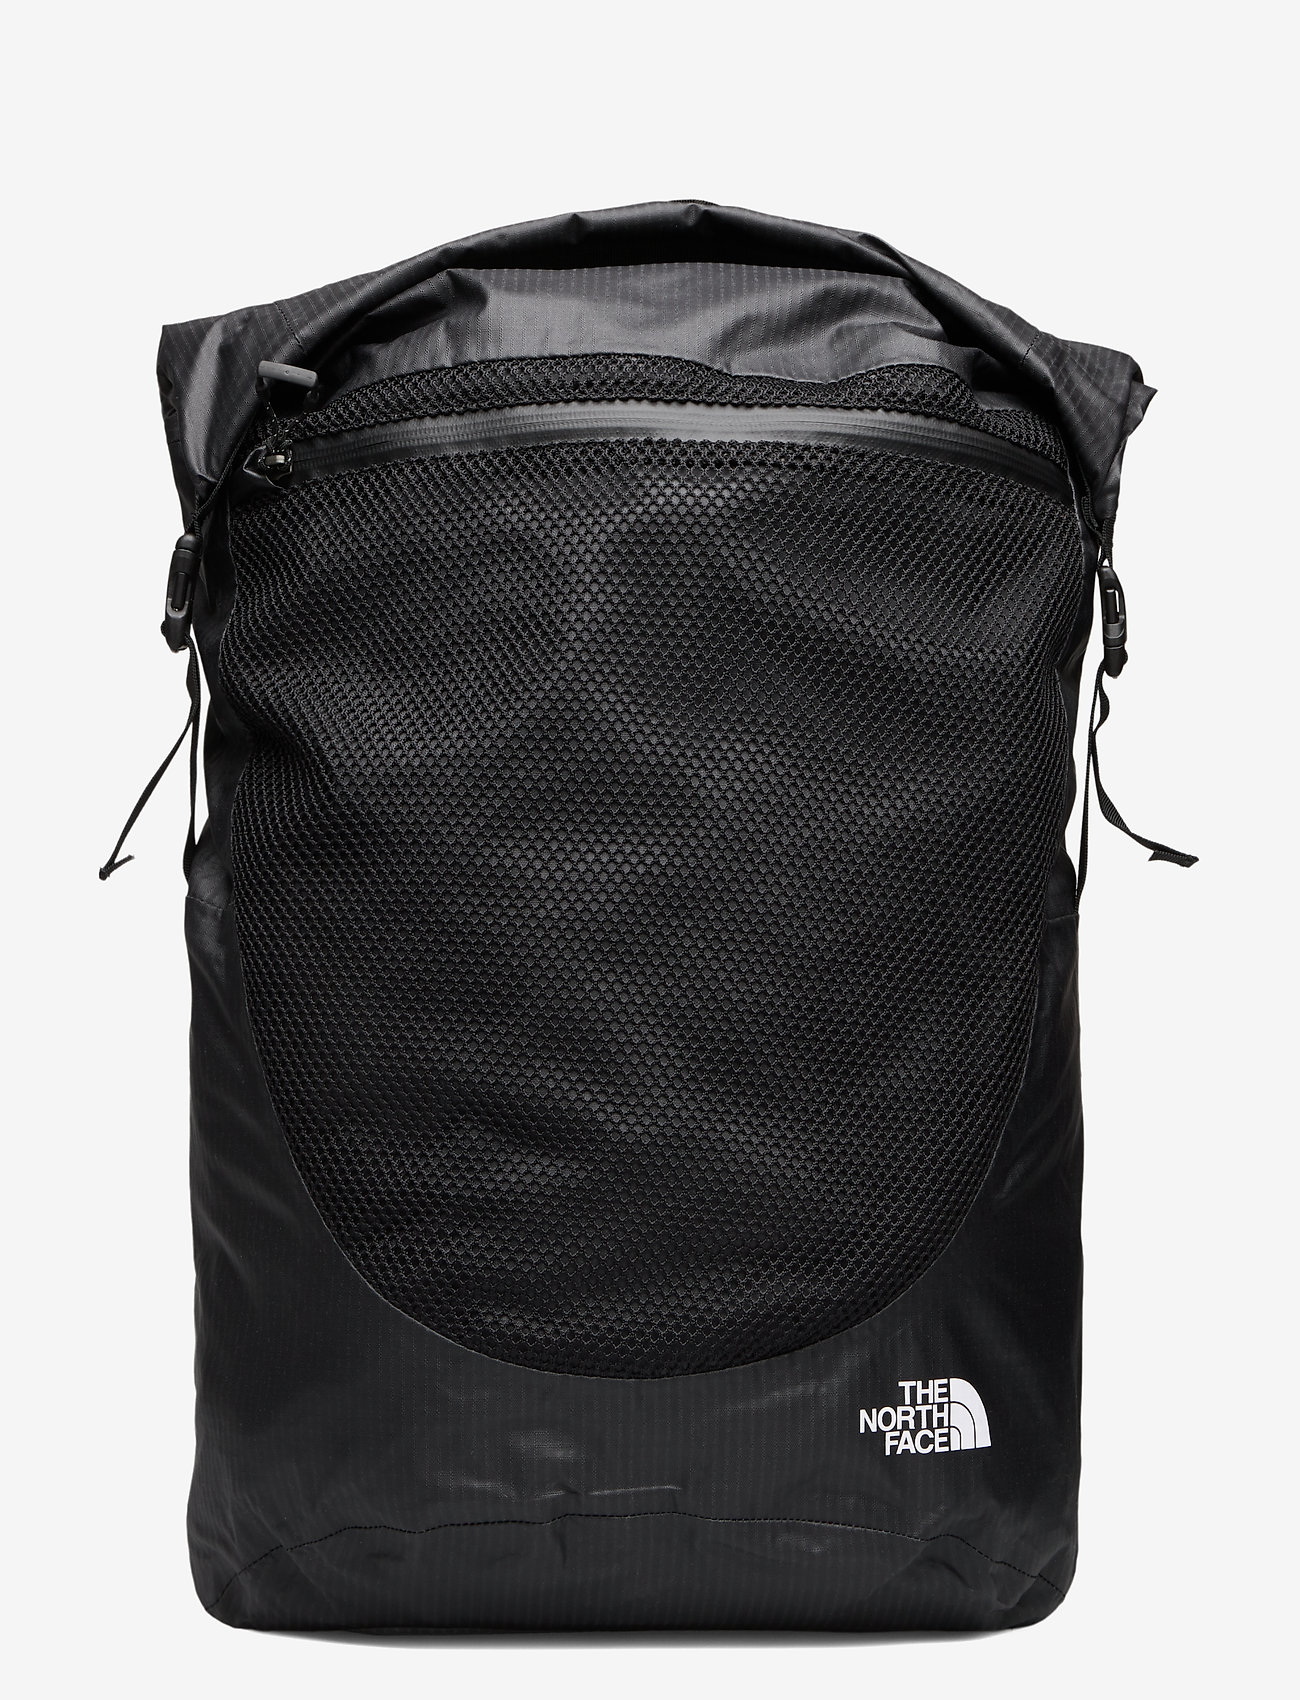 The North Face - WATERPROOF ROLLTOP - sacs a dos - tnf black - 0